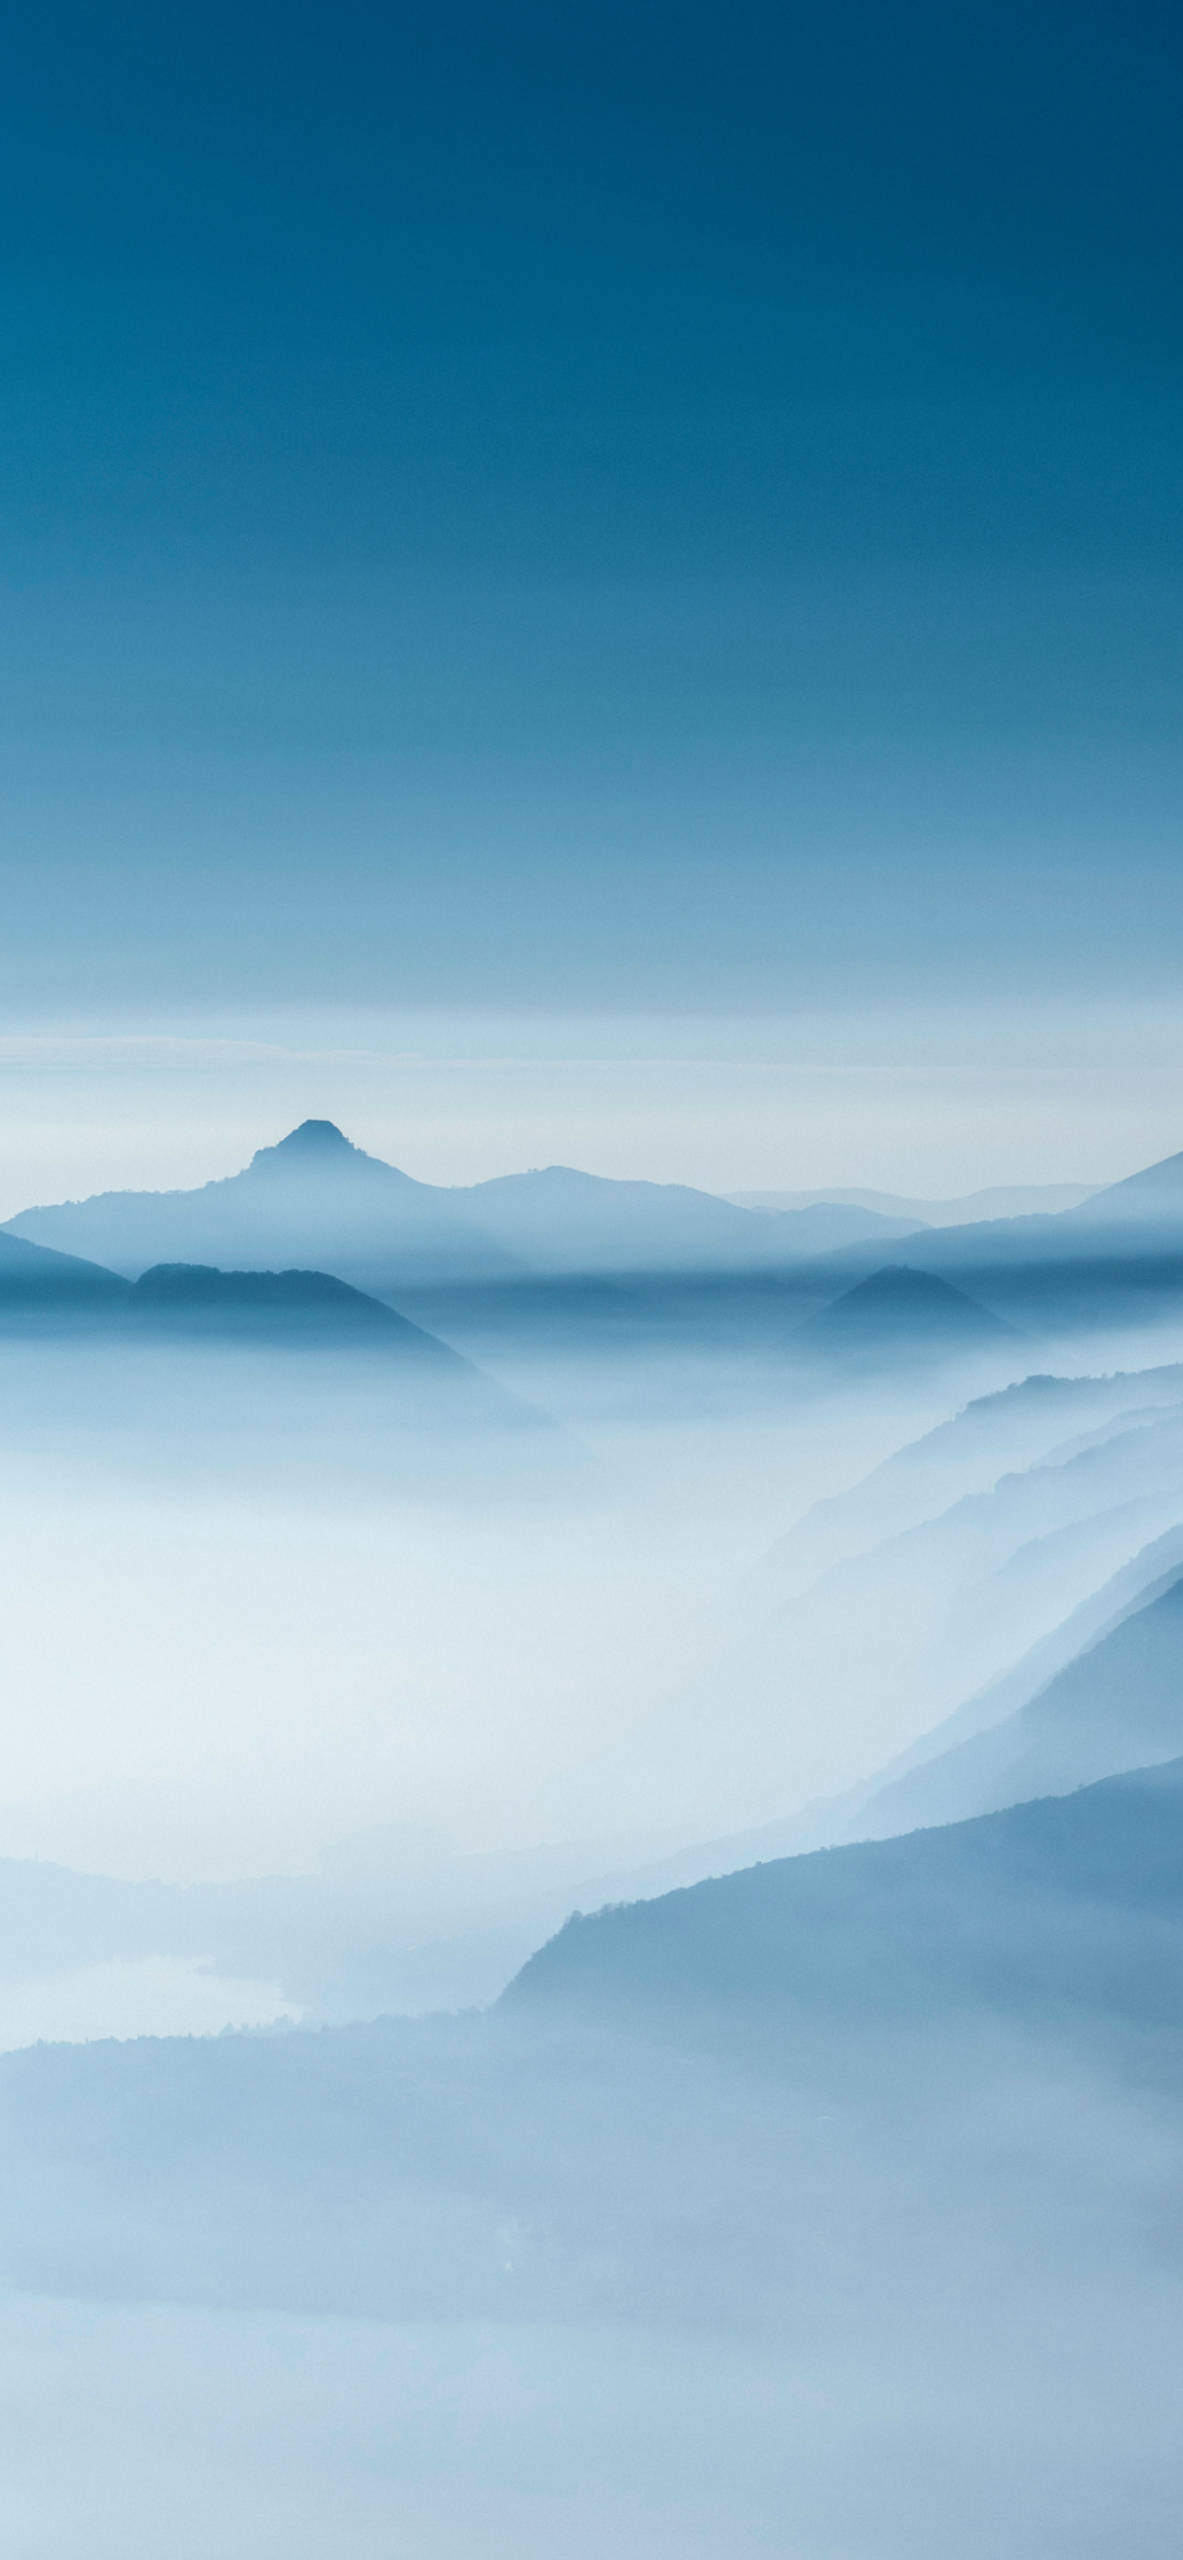 iPhone wallpapers gradients mountains Colors